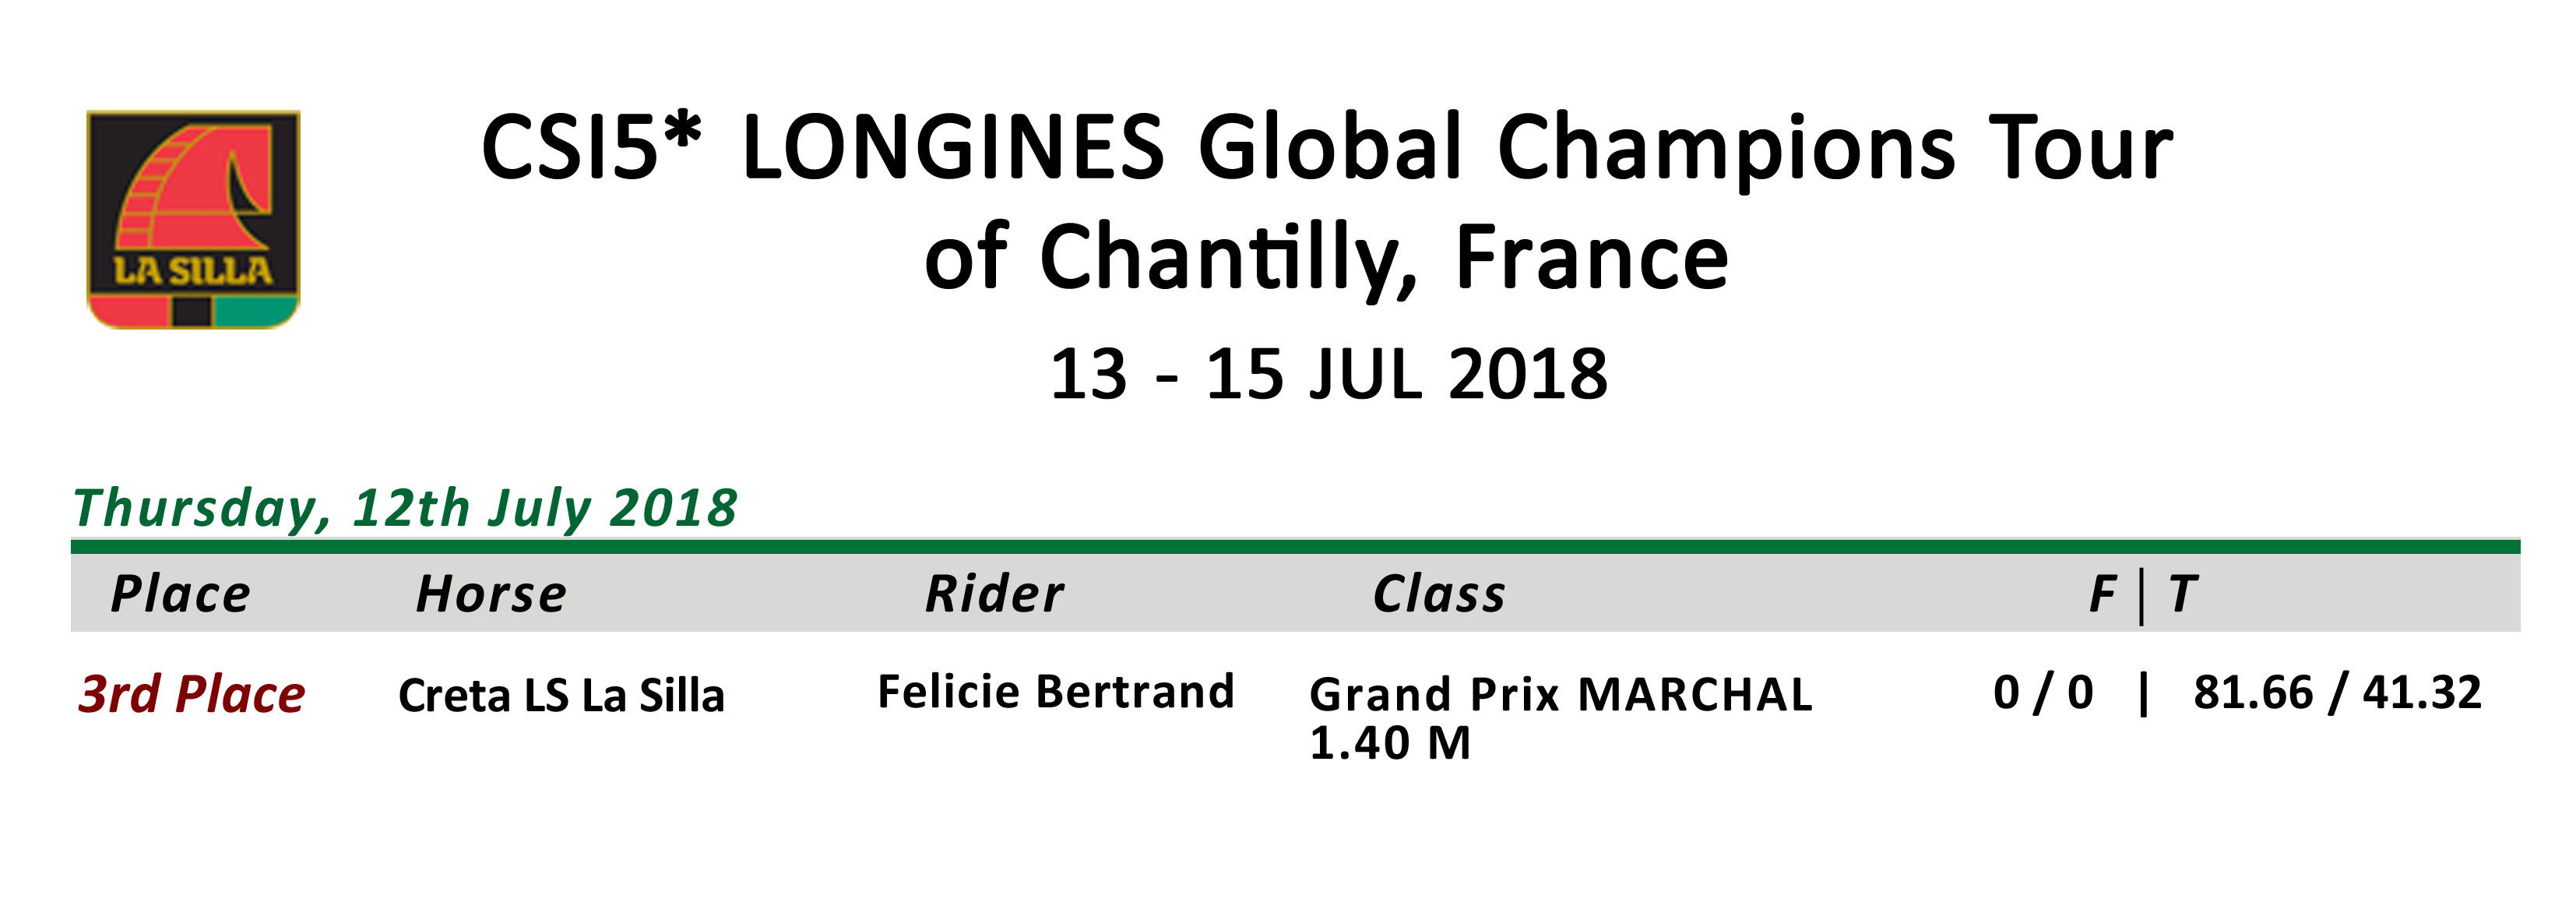 LONGINES-Global-Champions-Tour-of-Chantilly-JUL-2018